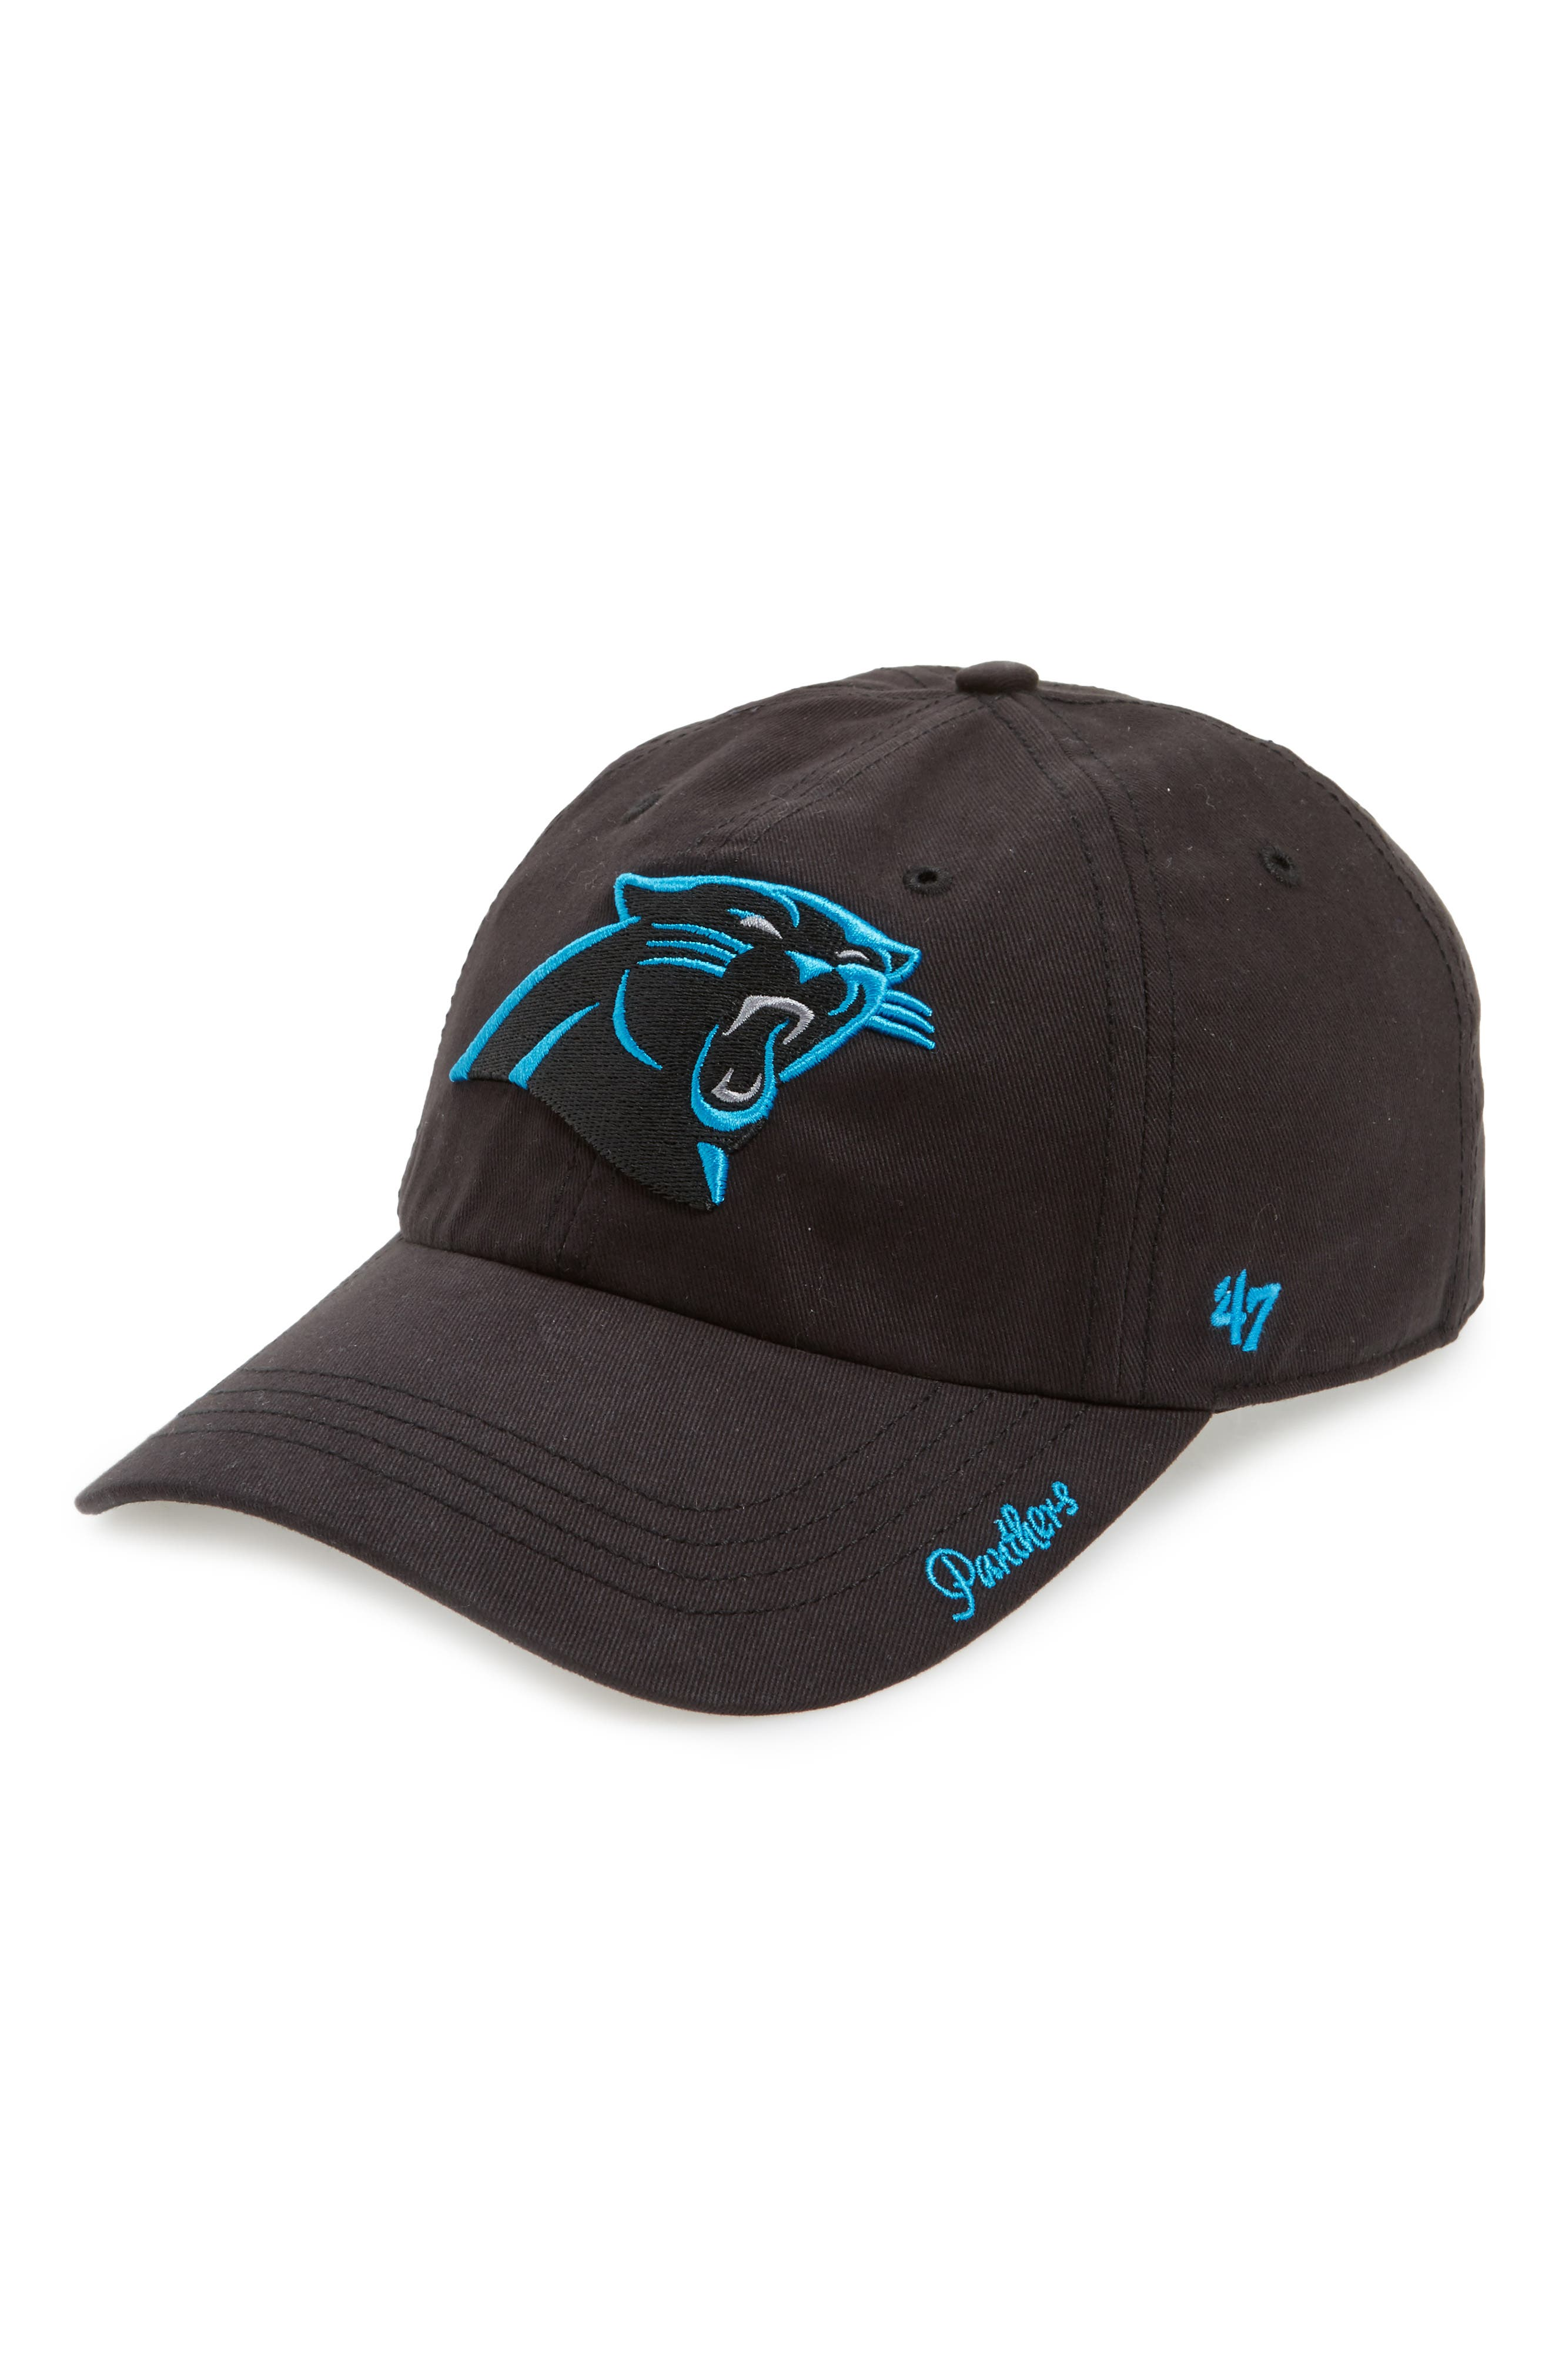 Alternate Image 1 Selected - '47 Carolina Panthers Cap